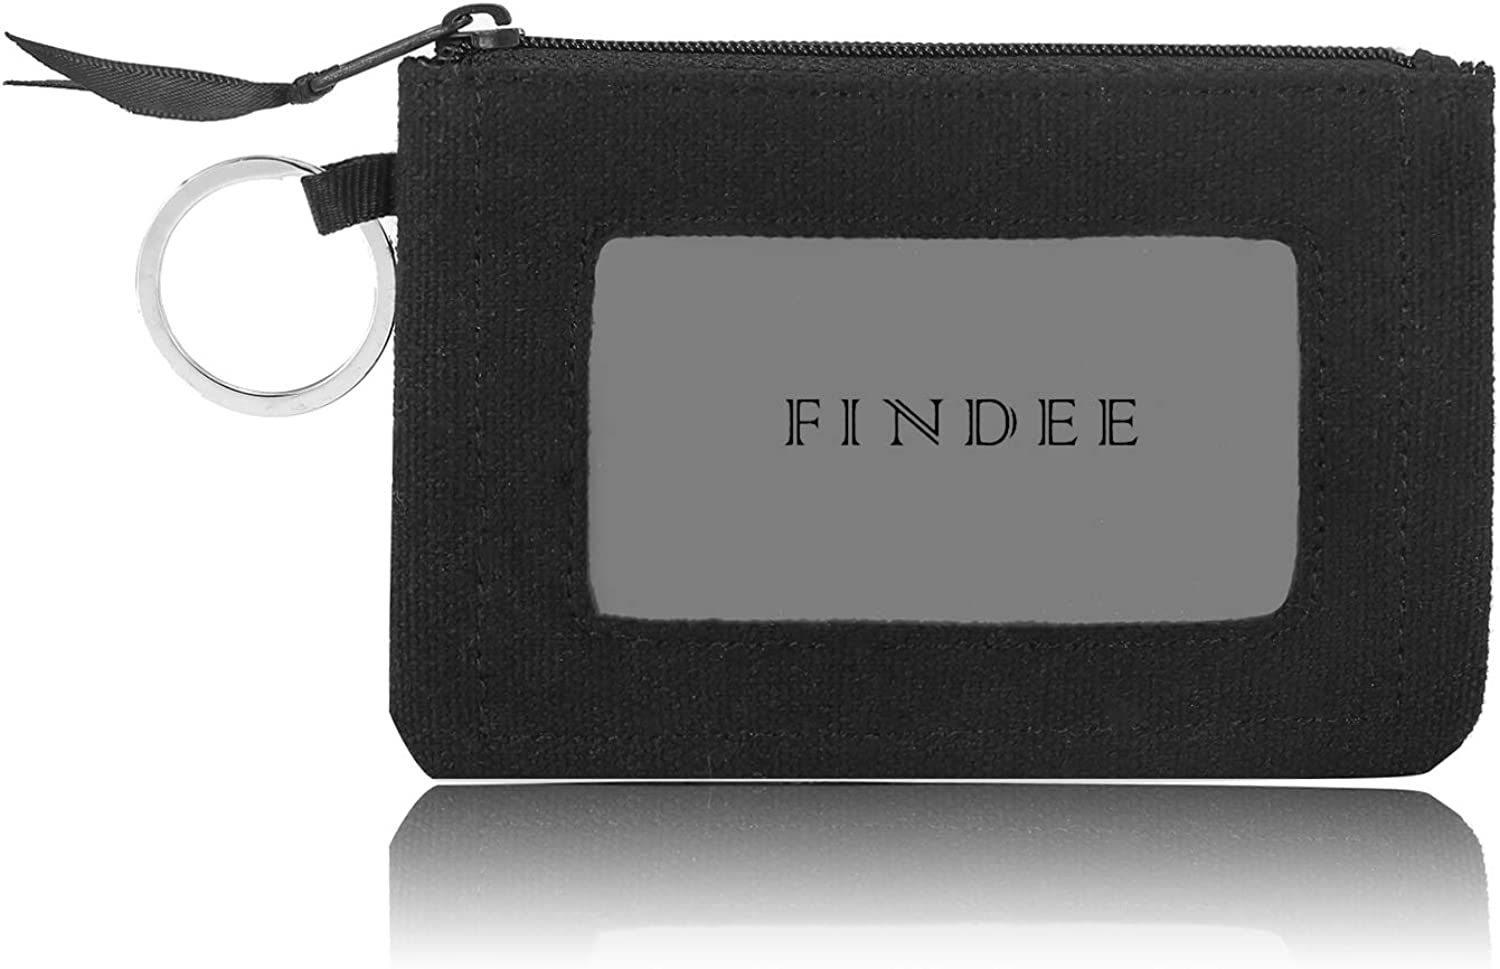 Iconic Zip ID Case Wallet Coin Window Selling with Id Signature Purse - Limited price sale